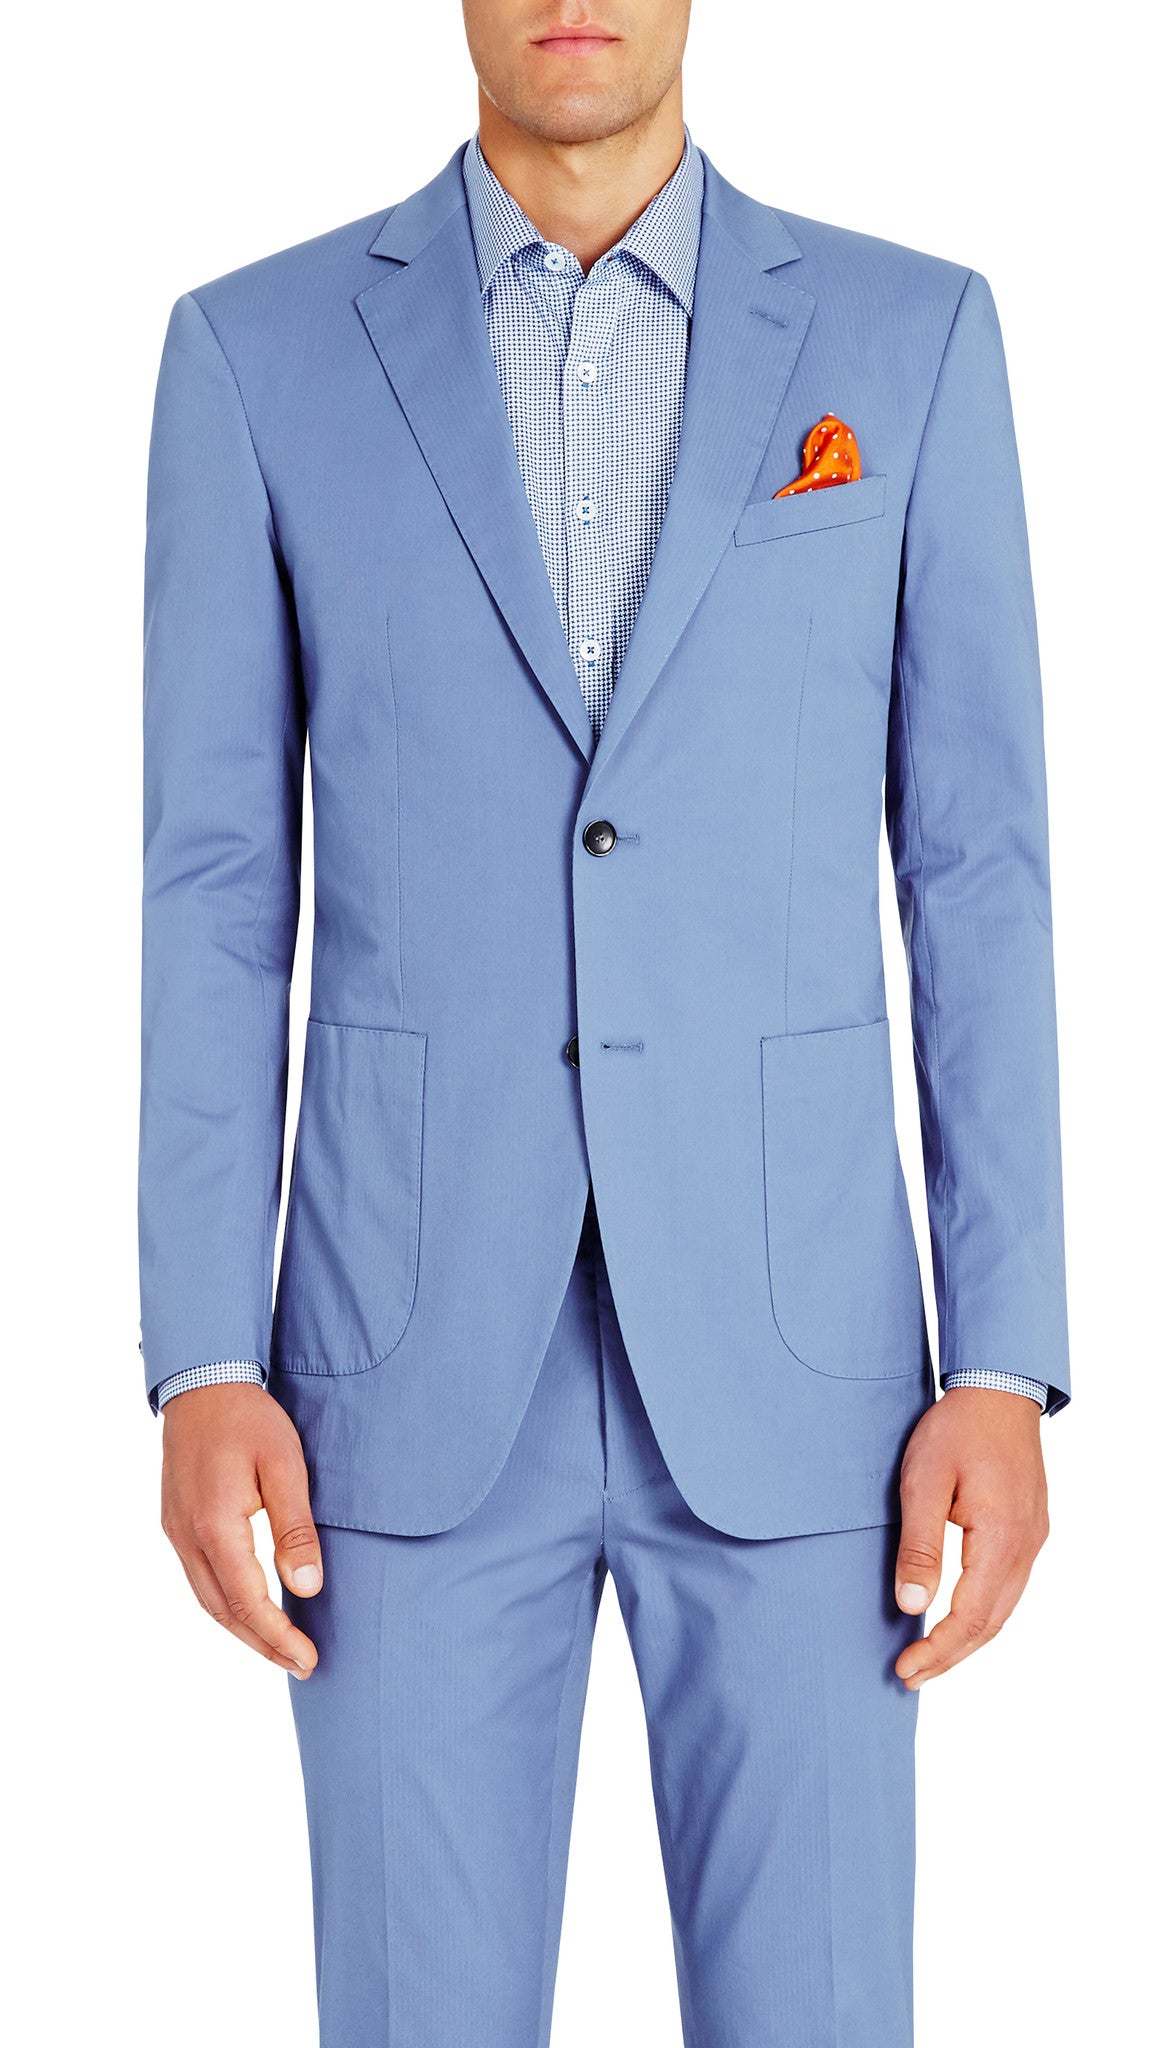 Mens Suits, Shirts, Ties & Jackets | Ron Bennett Menswear Online